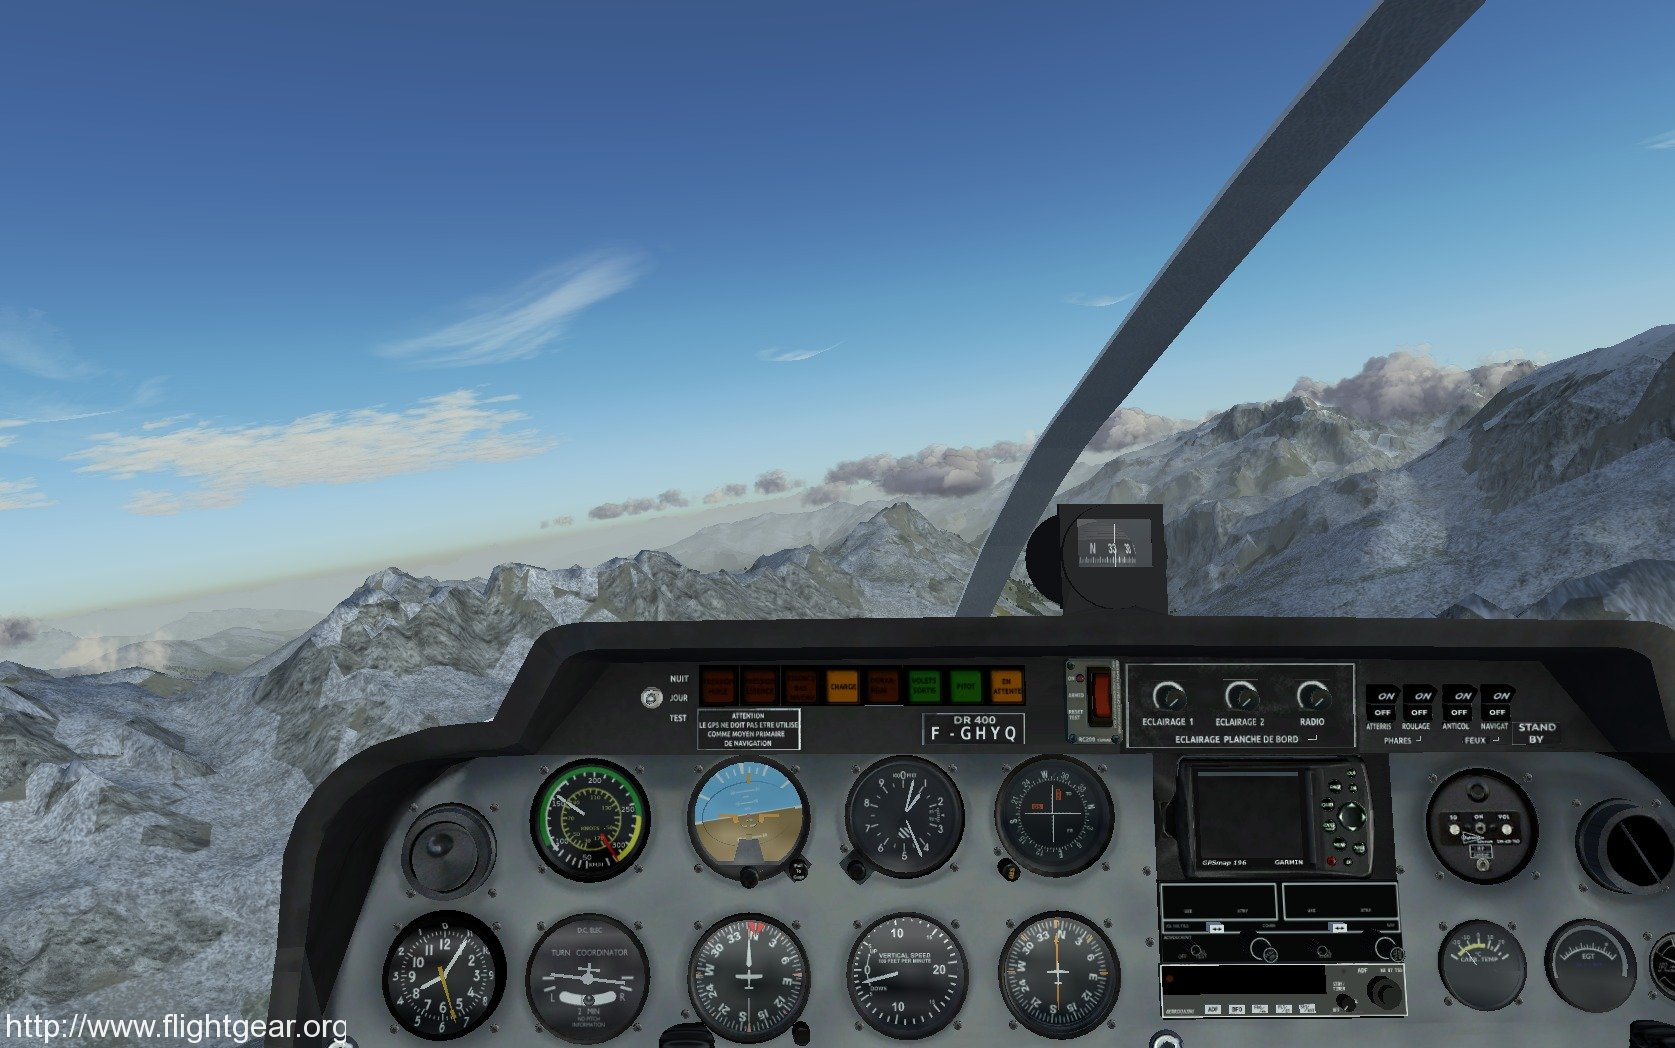 http://home.flightgear.org/wp-content/gallery/gallery-v2-10/fgfs-screen-166.jpg